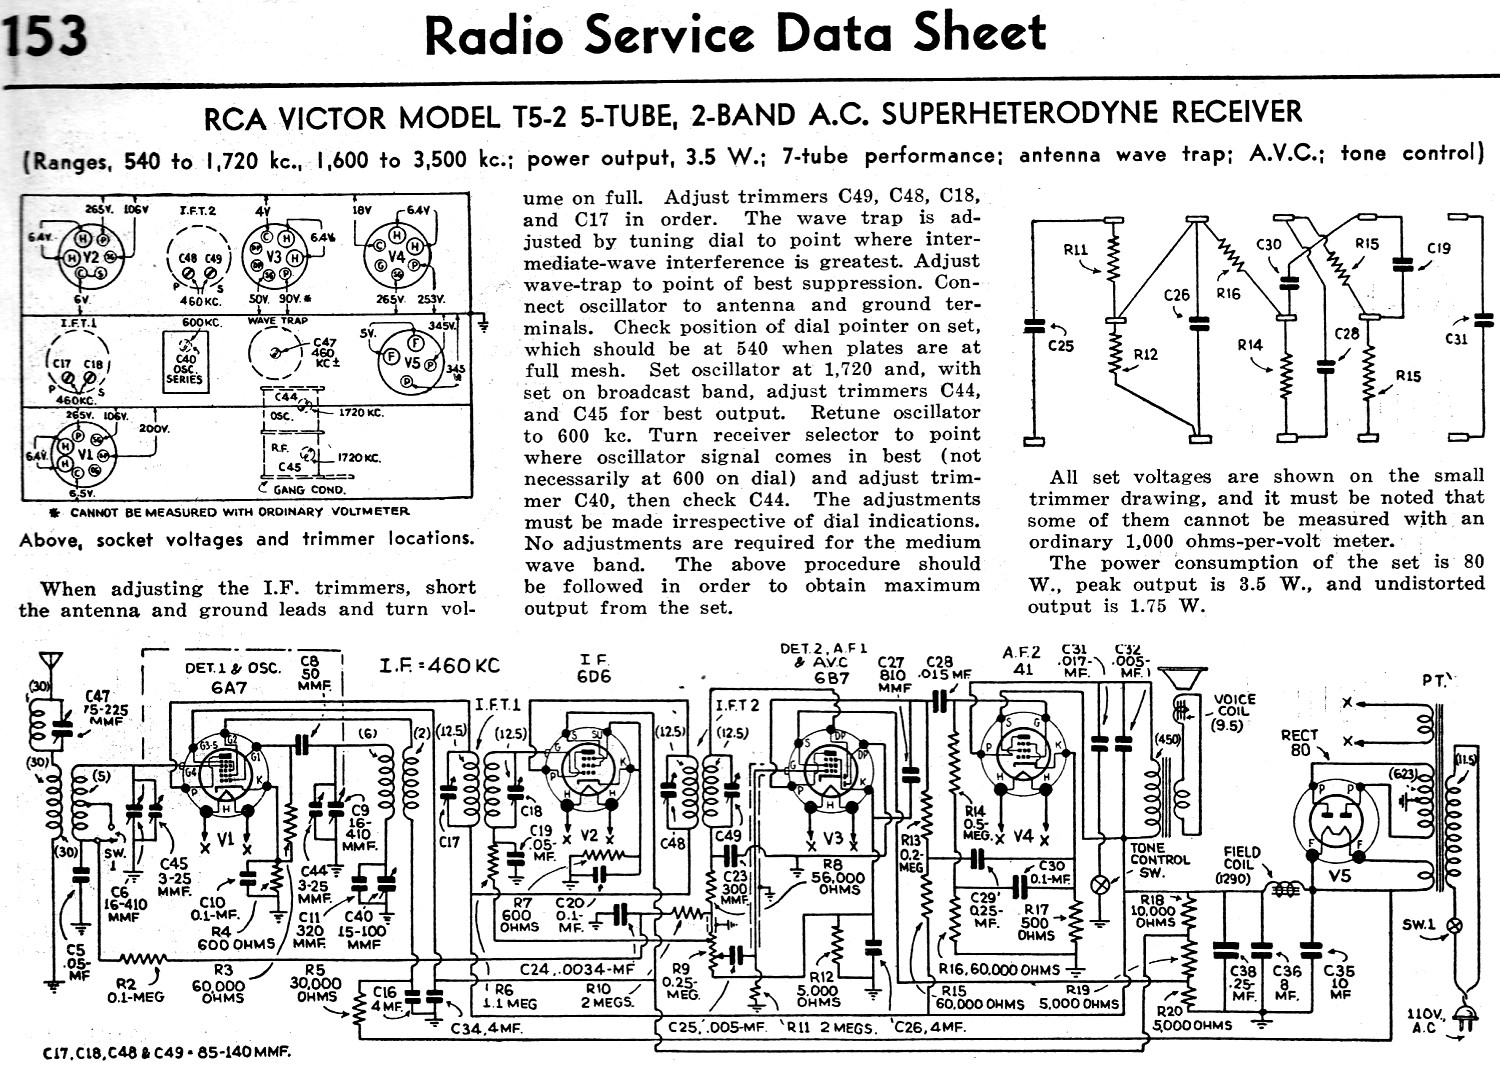 File World map blank gmt likewise Chuckschevytruckpages   images 80hlightschematic additionally wa2ise moreover 5 Tube Radio Schematic additionally Free Search Ls Magazine Models Dreams Land Issue And Bd On Pinteres. on all american five radio schematic